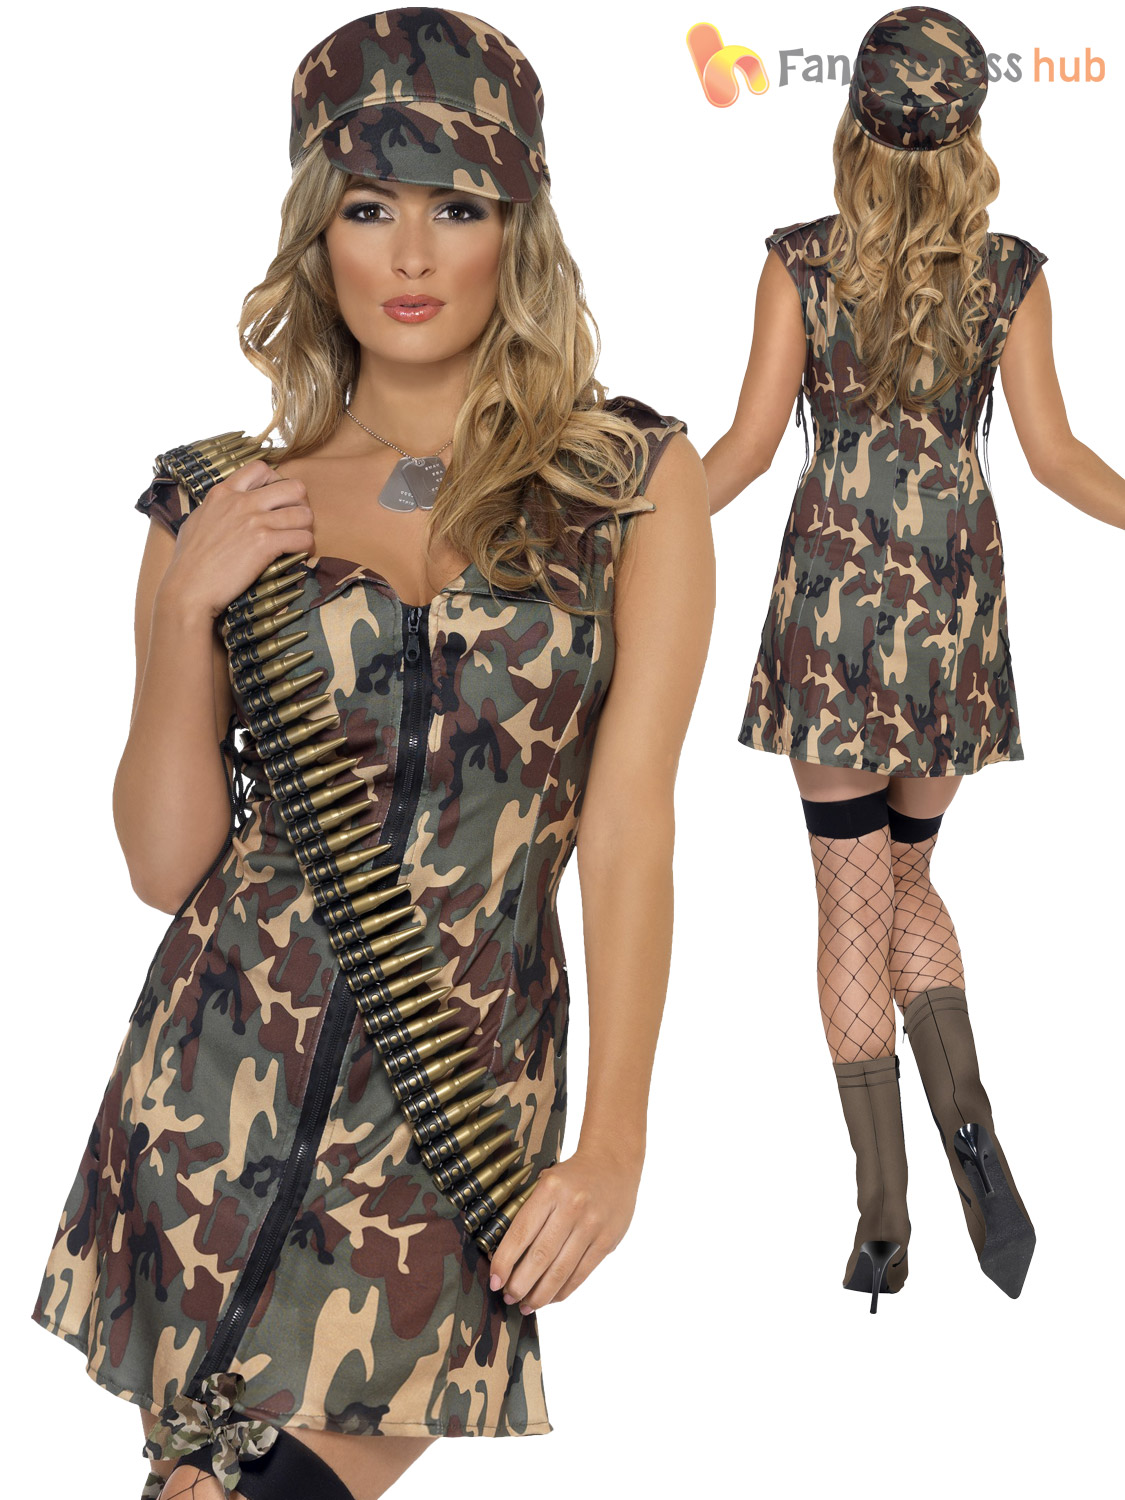 Ladies-Fever-Army-Girl-Costume-Adult-Combat-Solider-Fancy-Dress-Camo-Military thumbnail 3